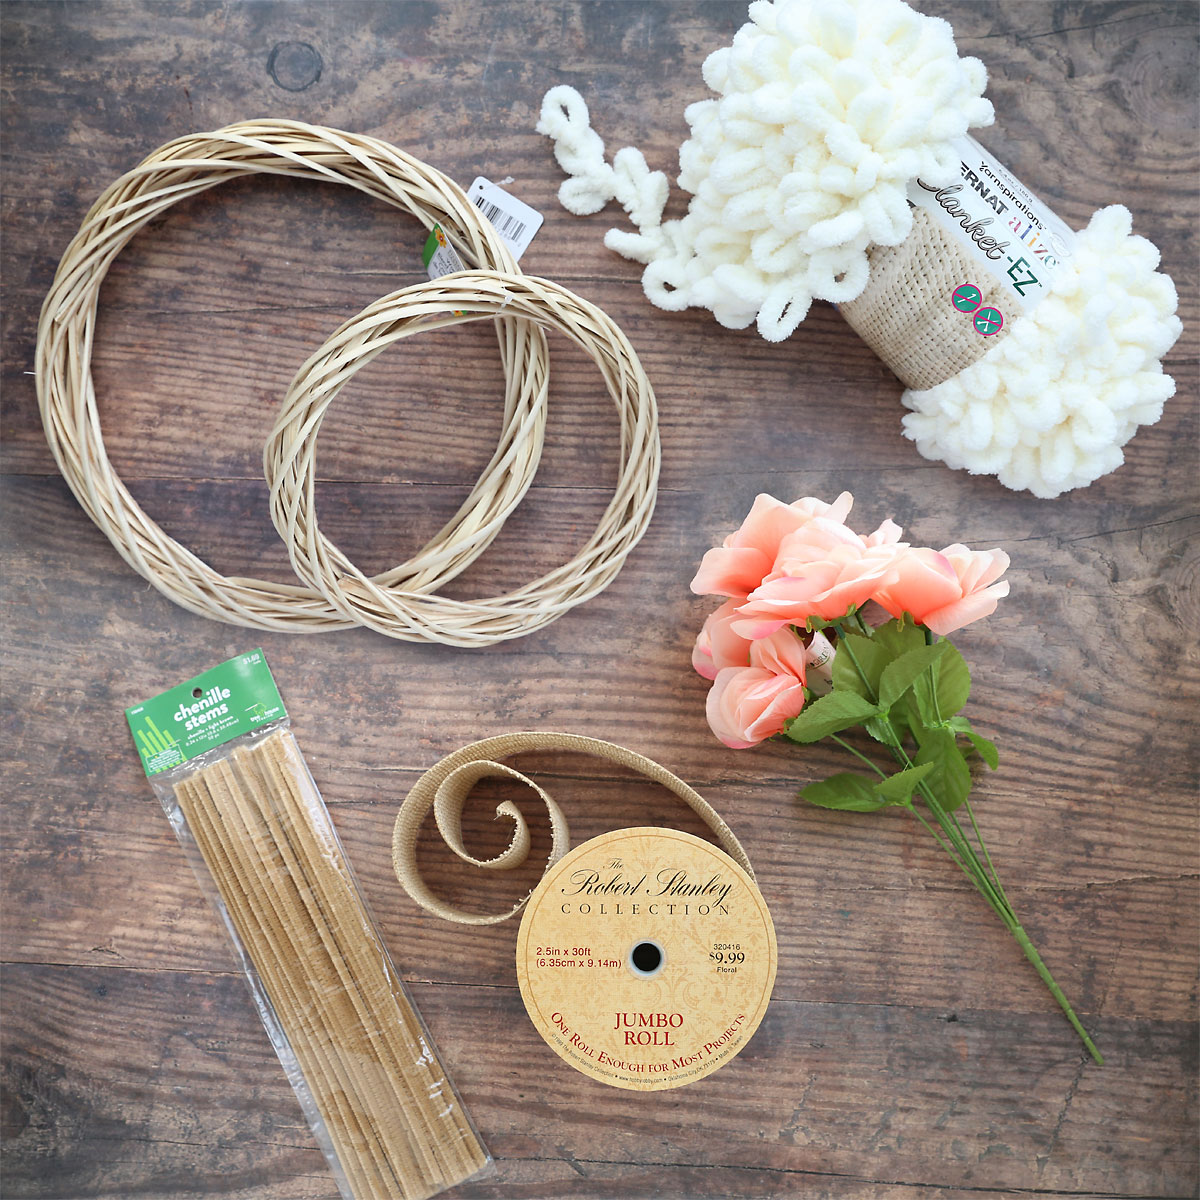 supplies: two wreath forms, cream loop yarn, faux flowers, burlap ribbon, pipe cleaners